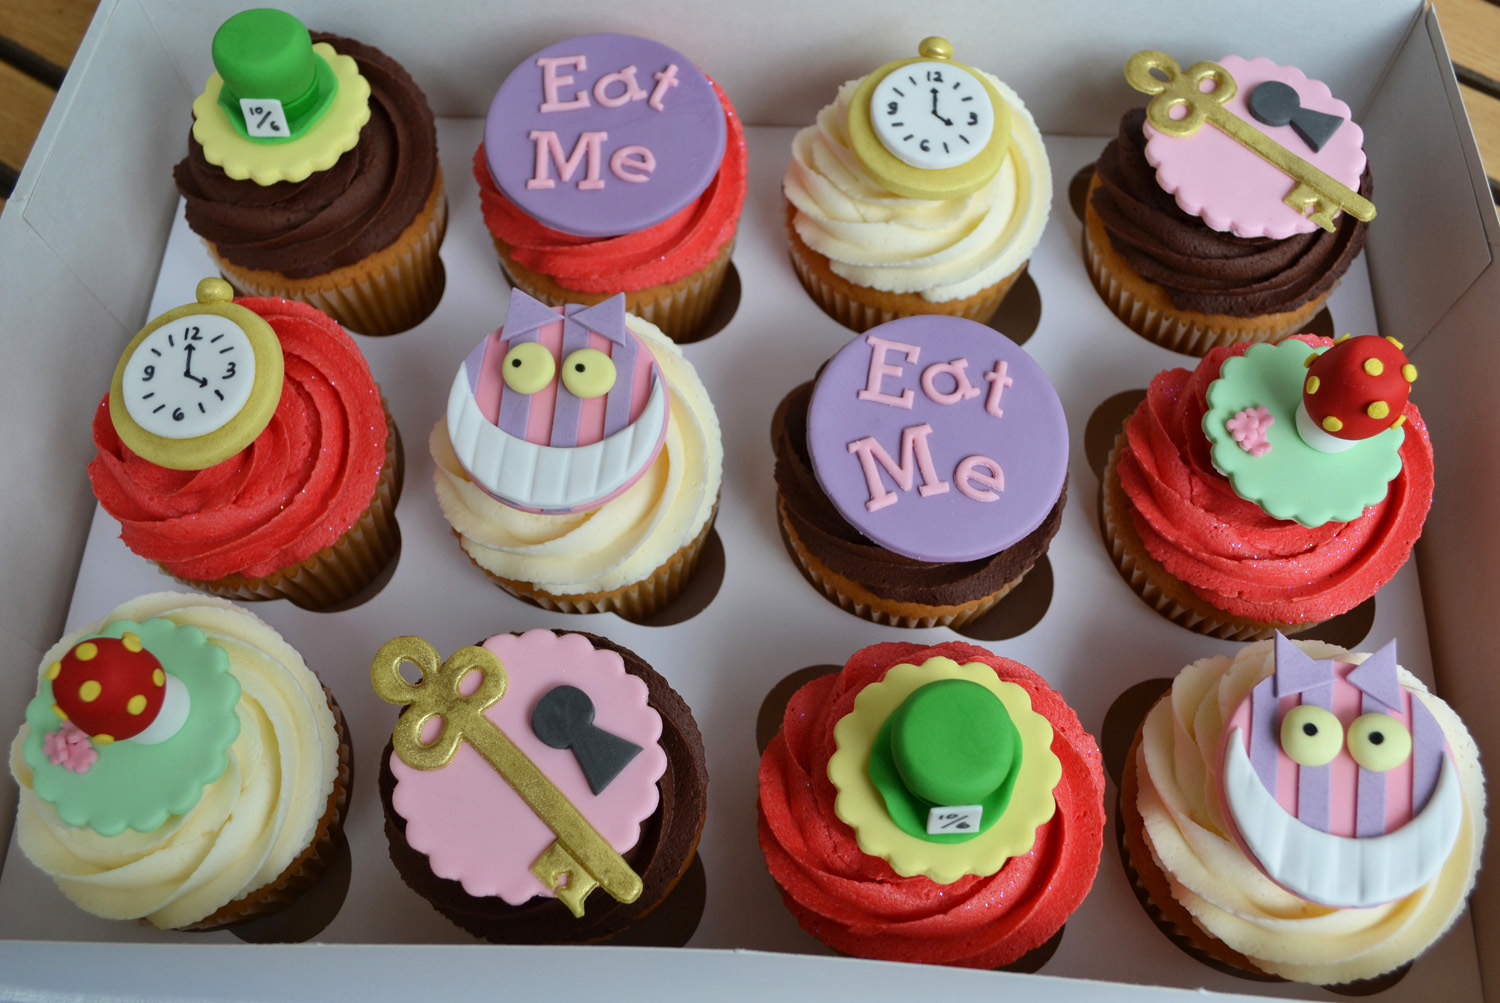 mad hatter cupcakes - photo #39